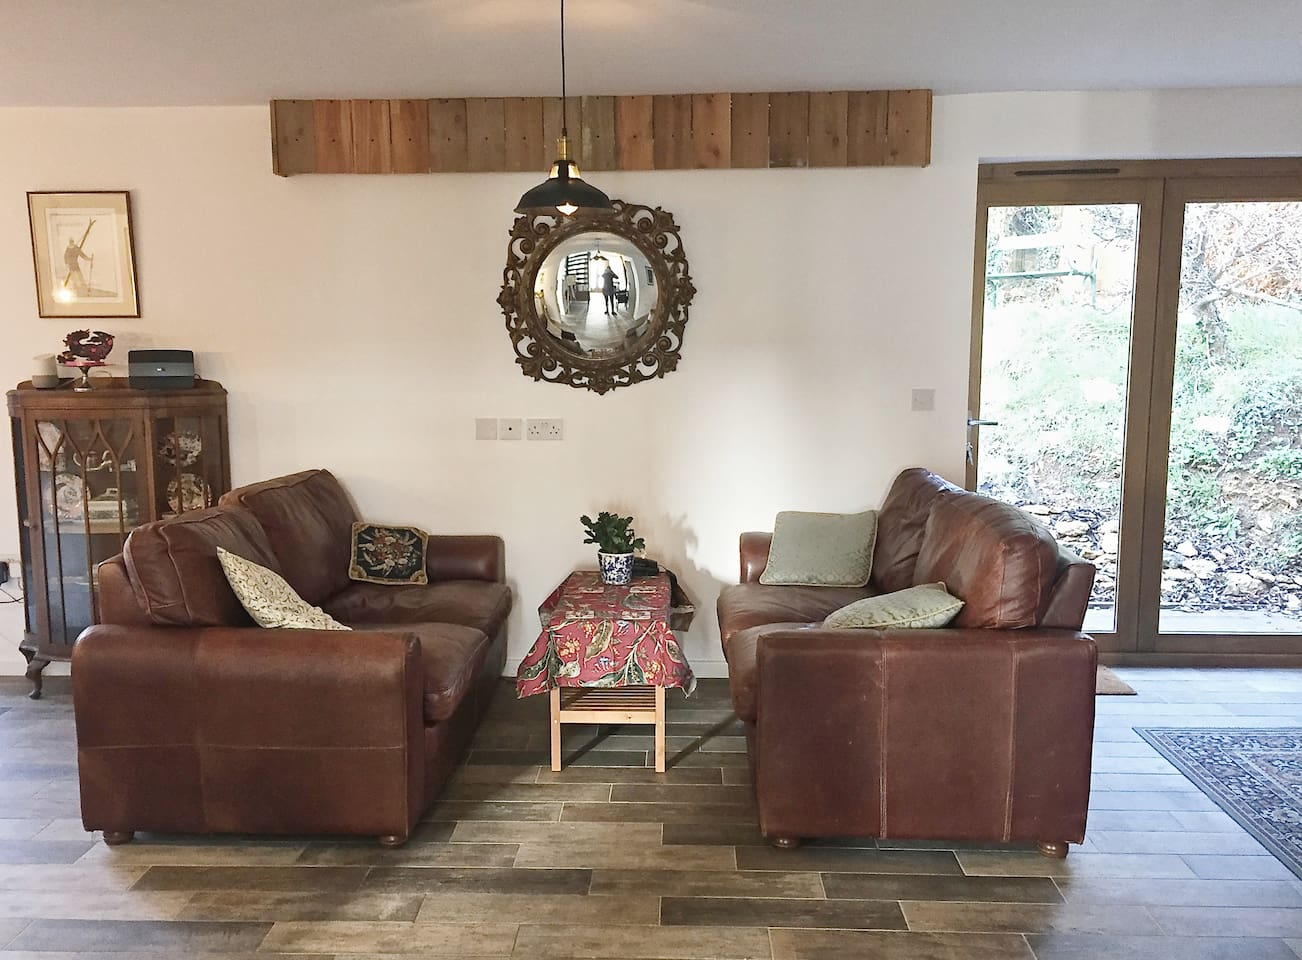 Snug Vintage Second Hand and Locally Sourced Leather Sofa Seating to kick back on.